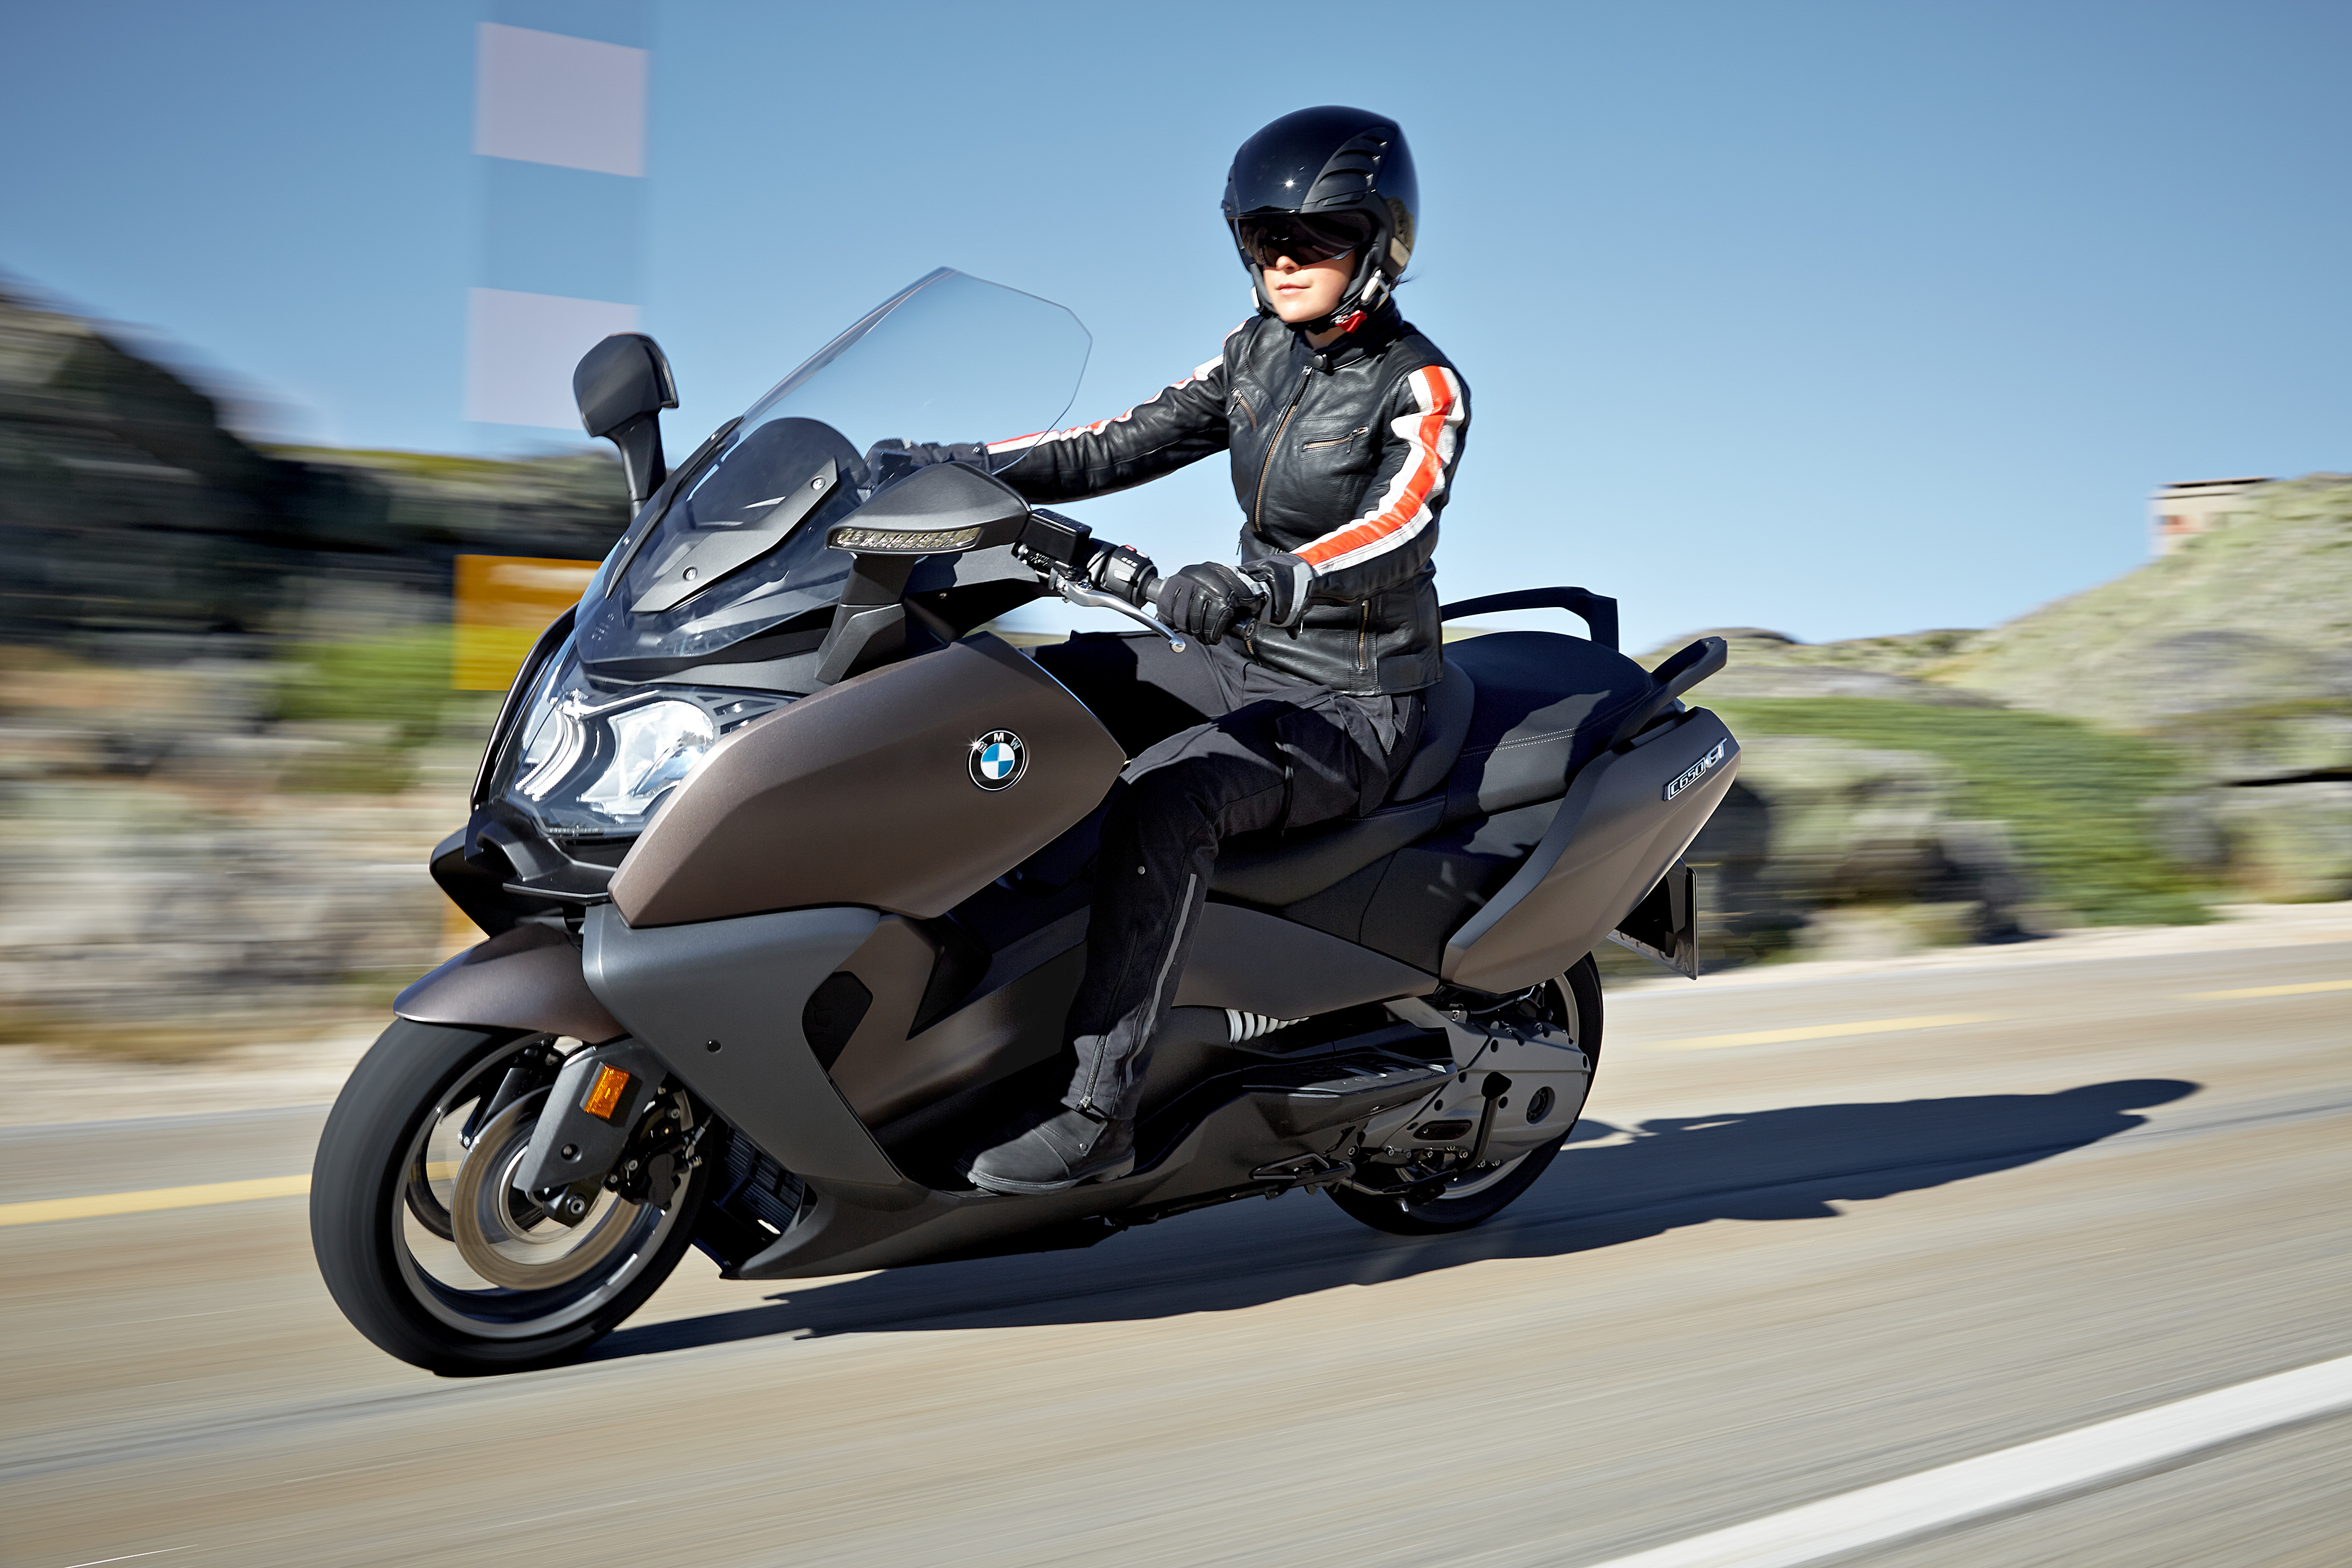 new bmw c 650 sport and c 650 gt maxi scooters bike review. Black Bedroom Furniture Sets. Home Design Ideas